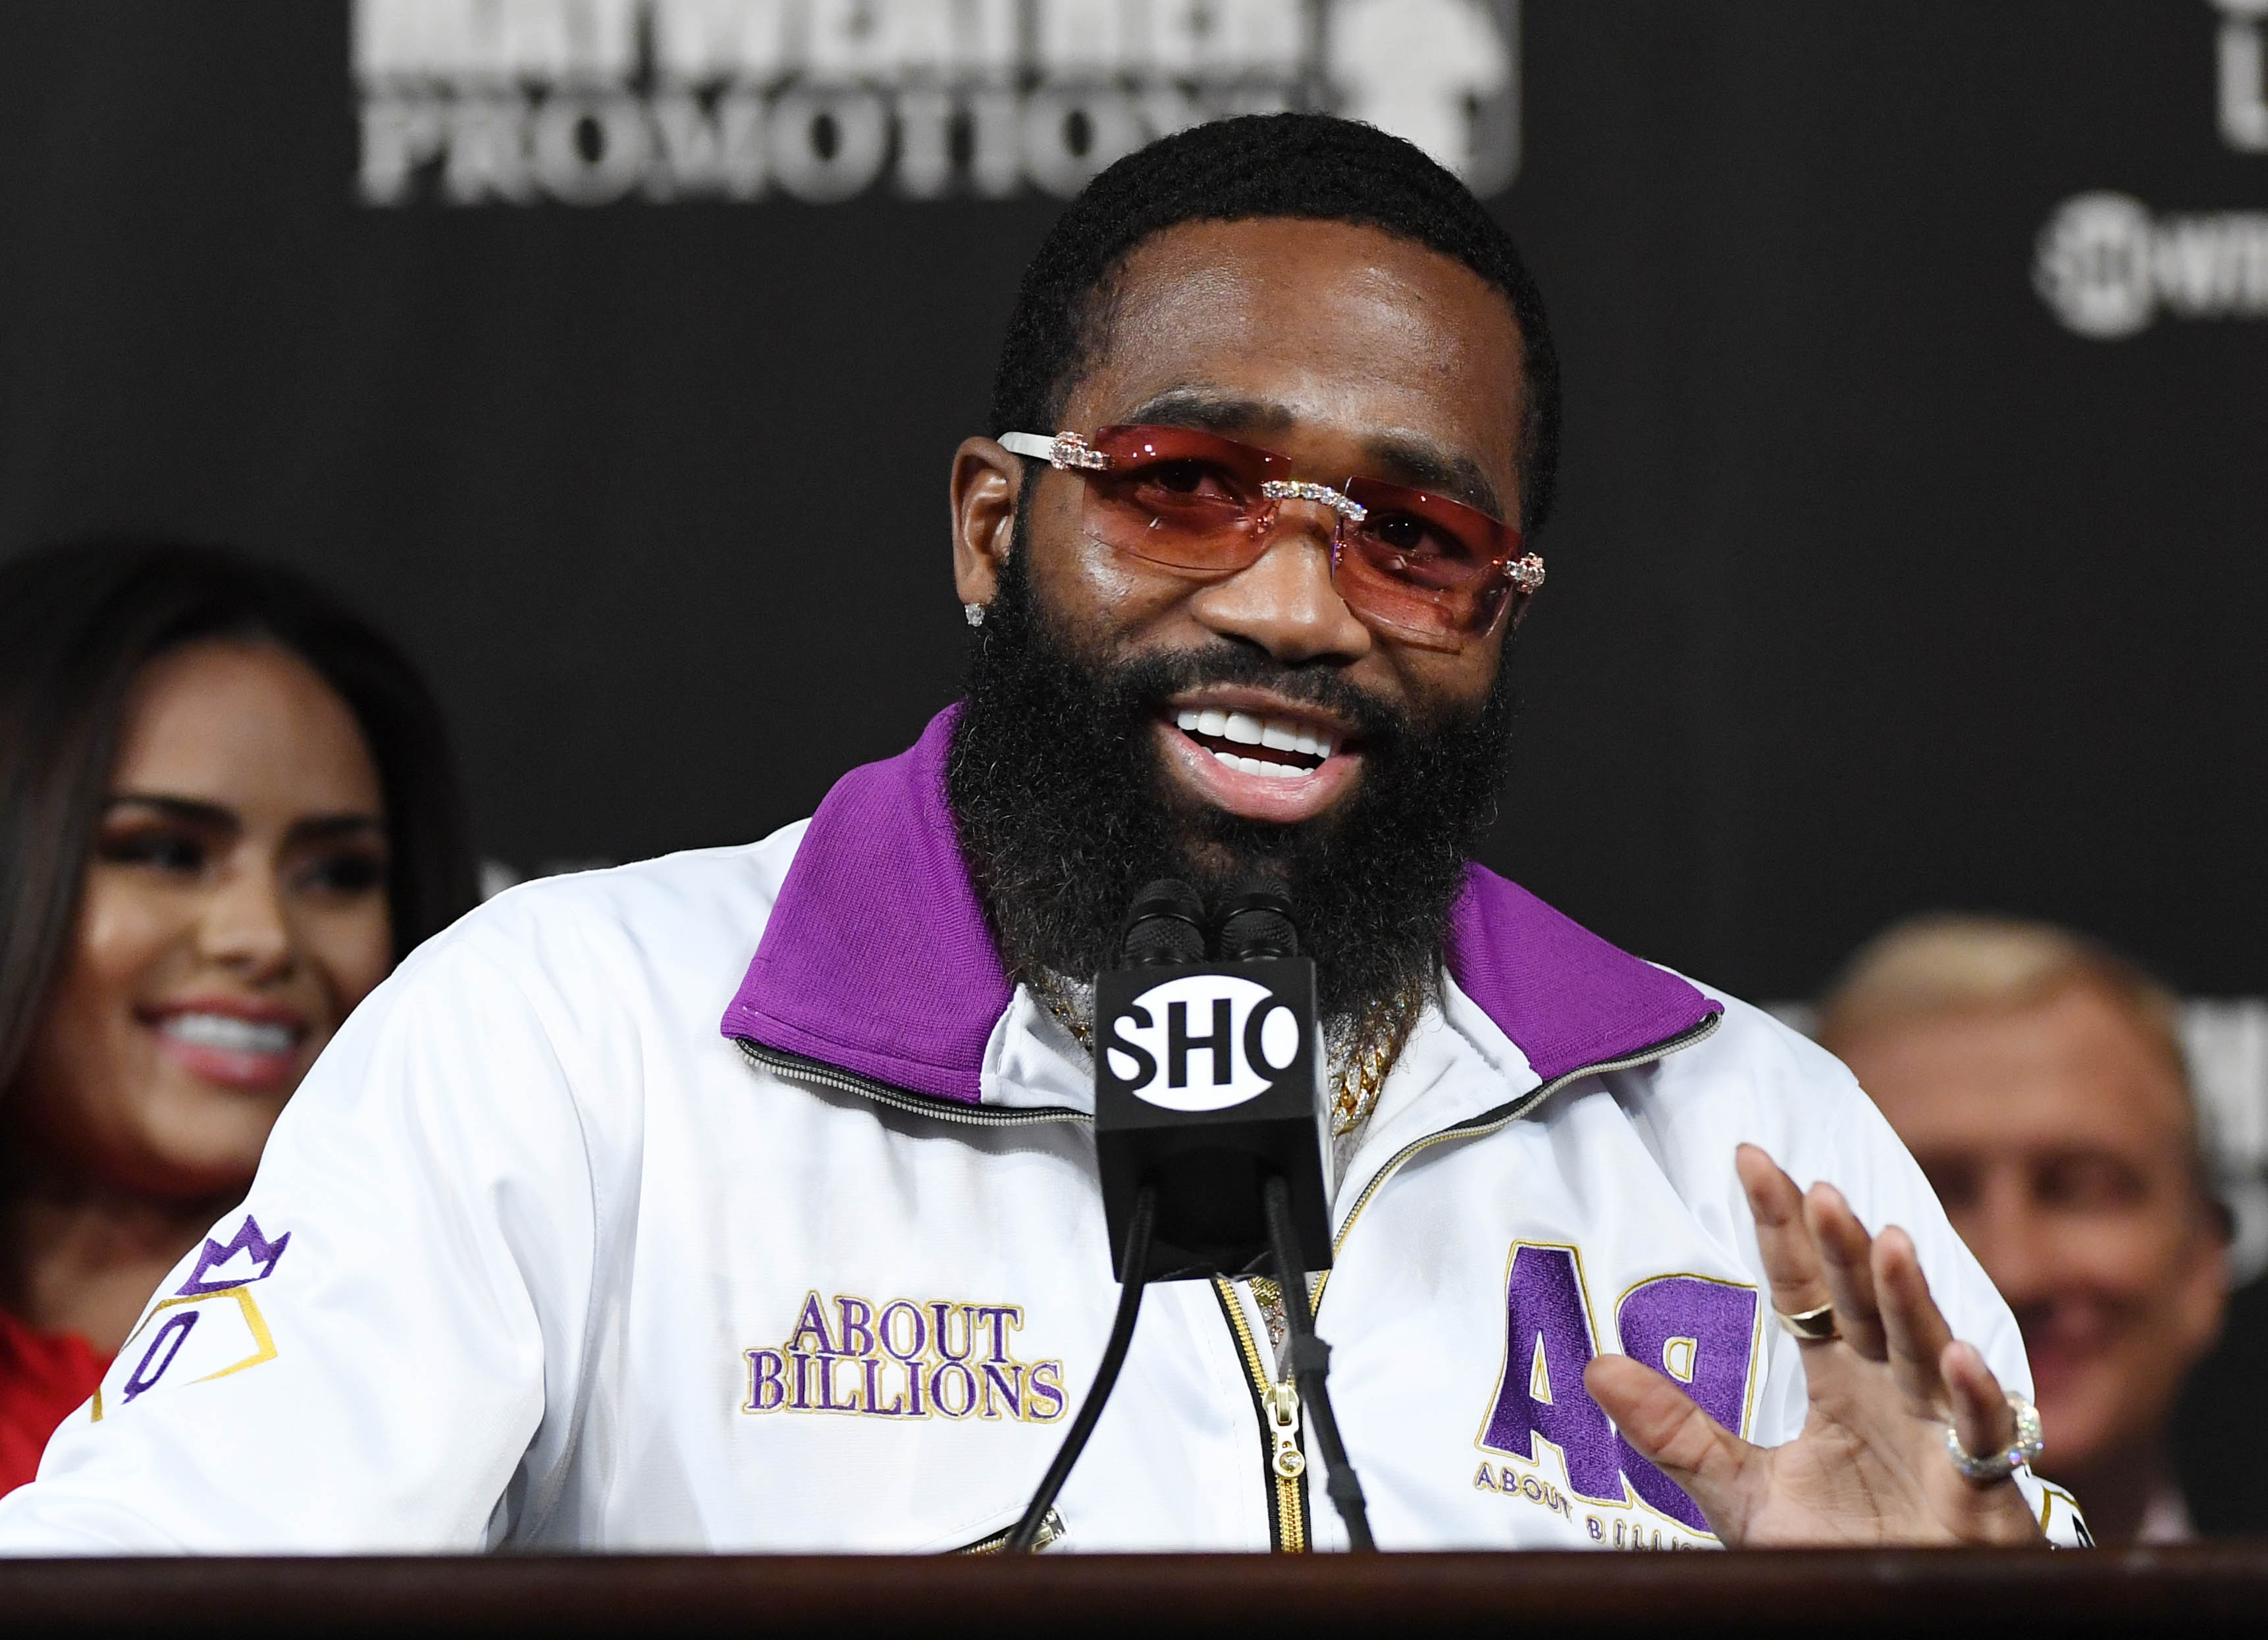 Manny Pacquiao v Adrien Broner - News Conference